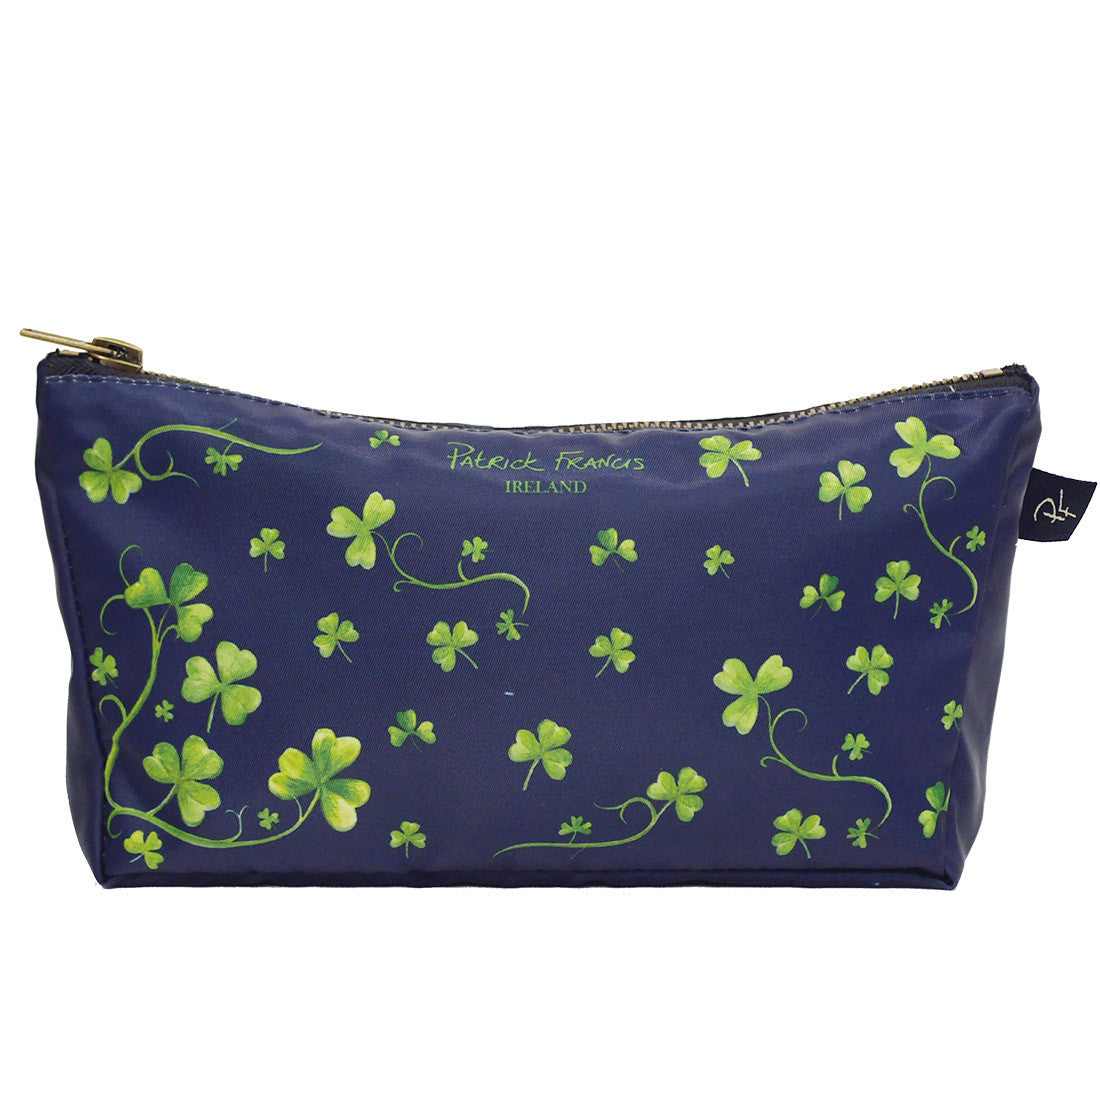 Small Coin Purse Navy with Green Shamrock Patrick Francis Collection.